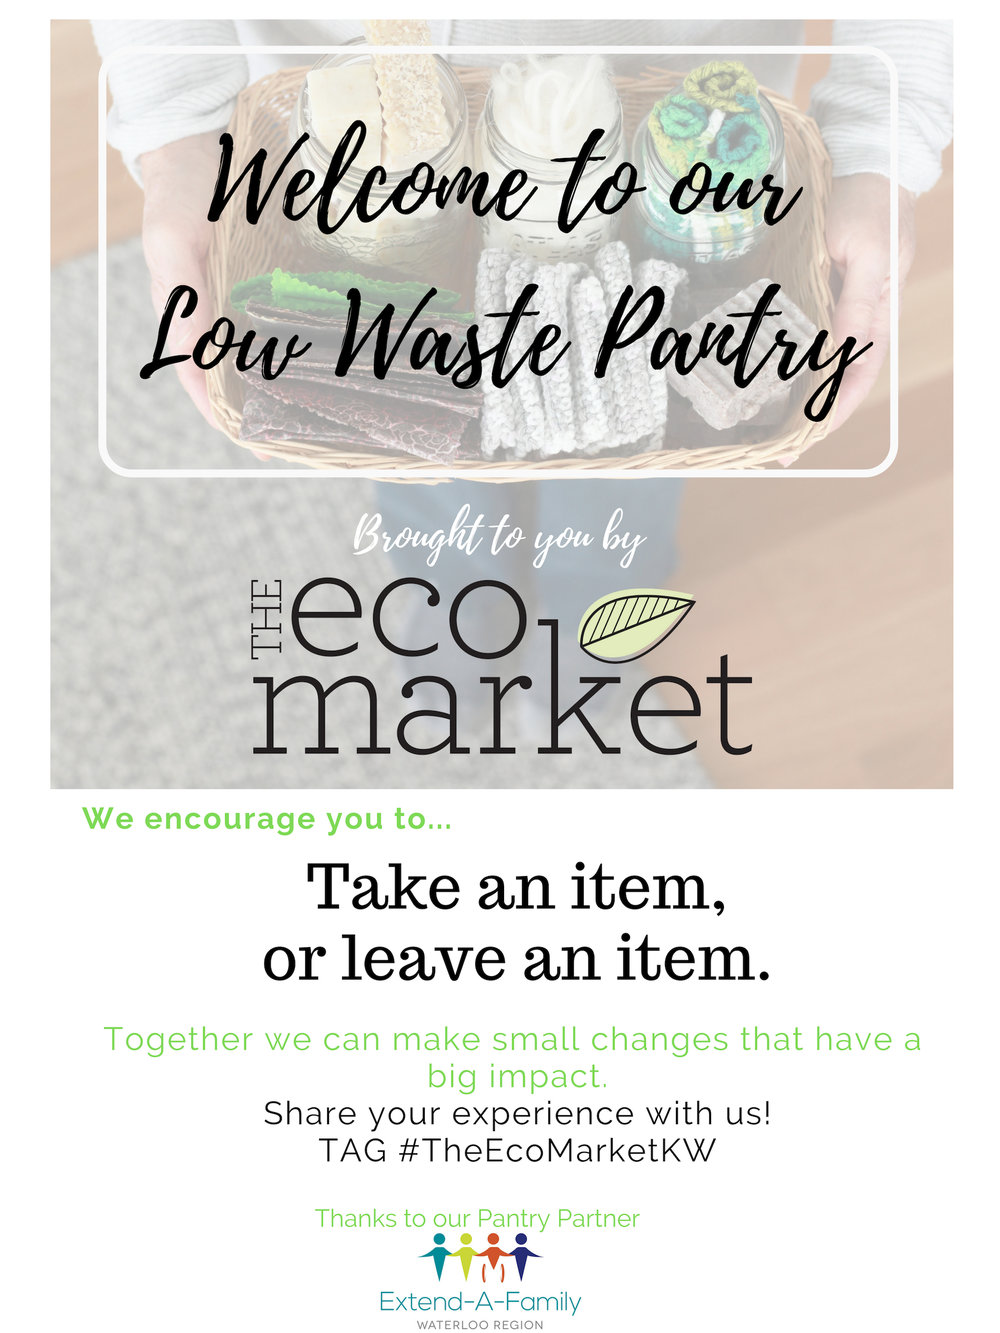 Welcome to our Low Waste Pantry (1).jpg